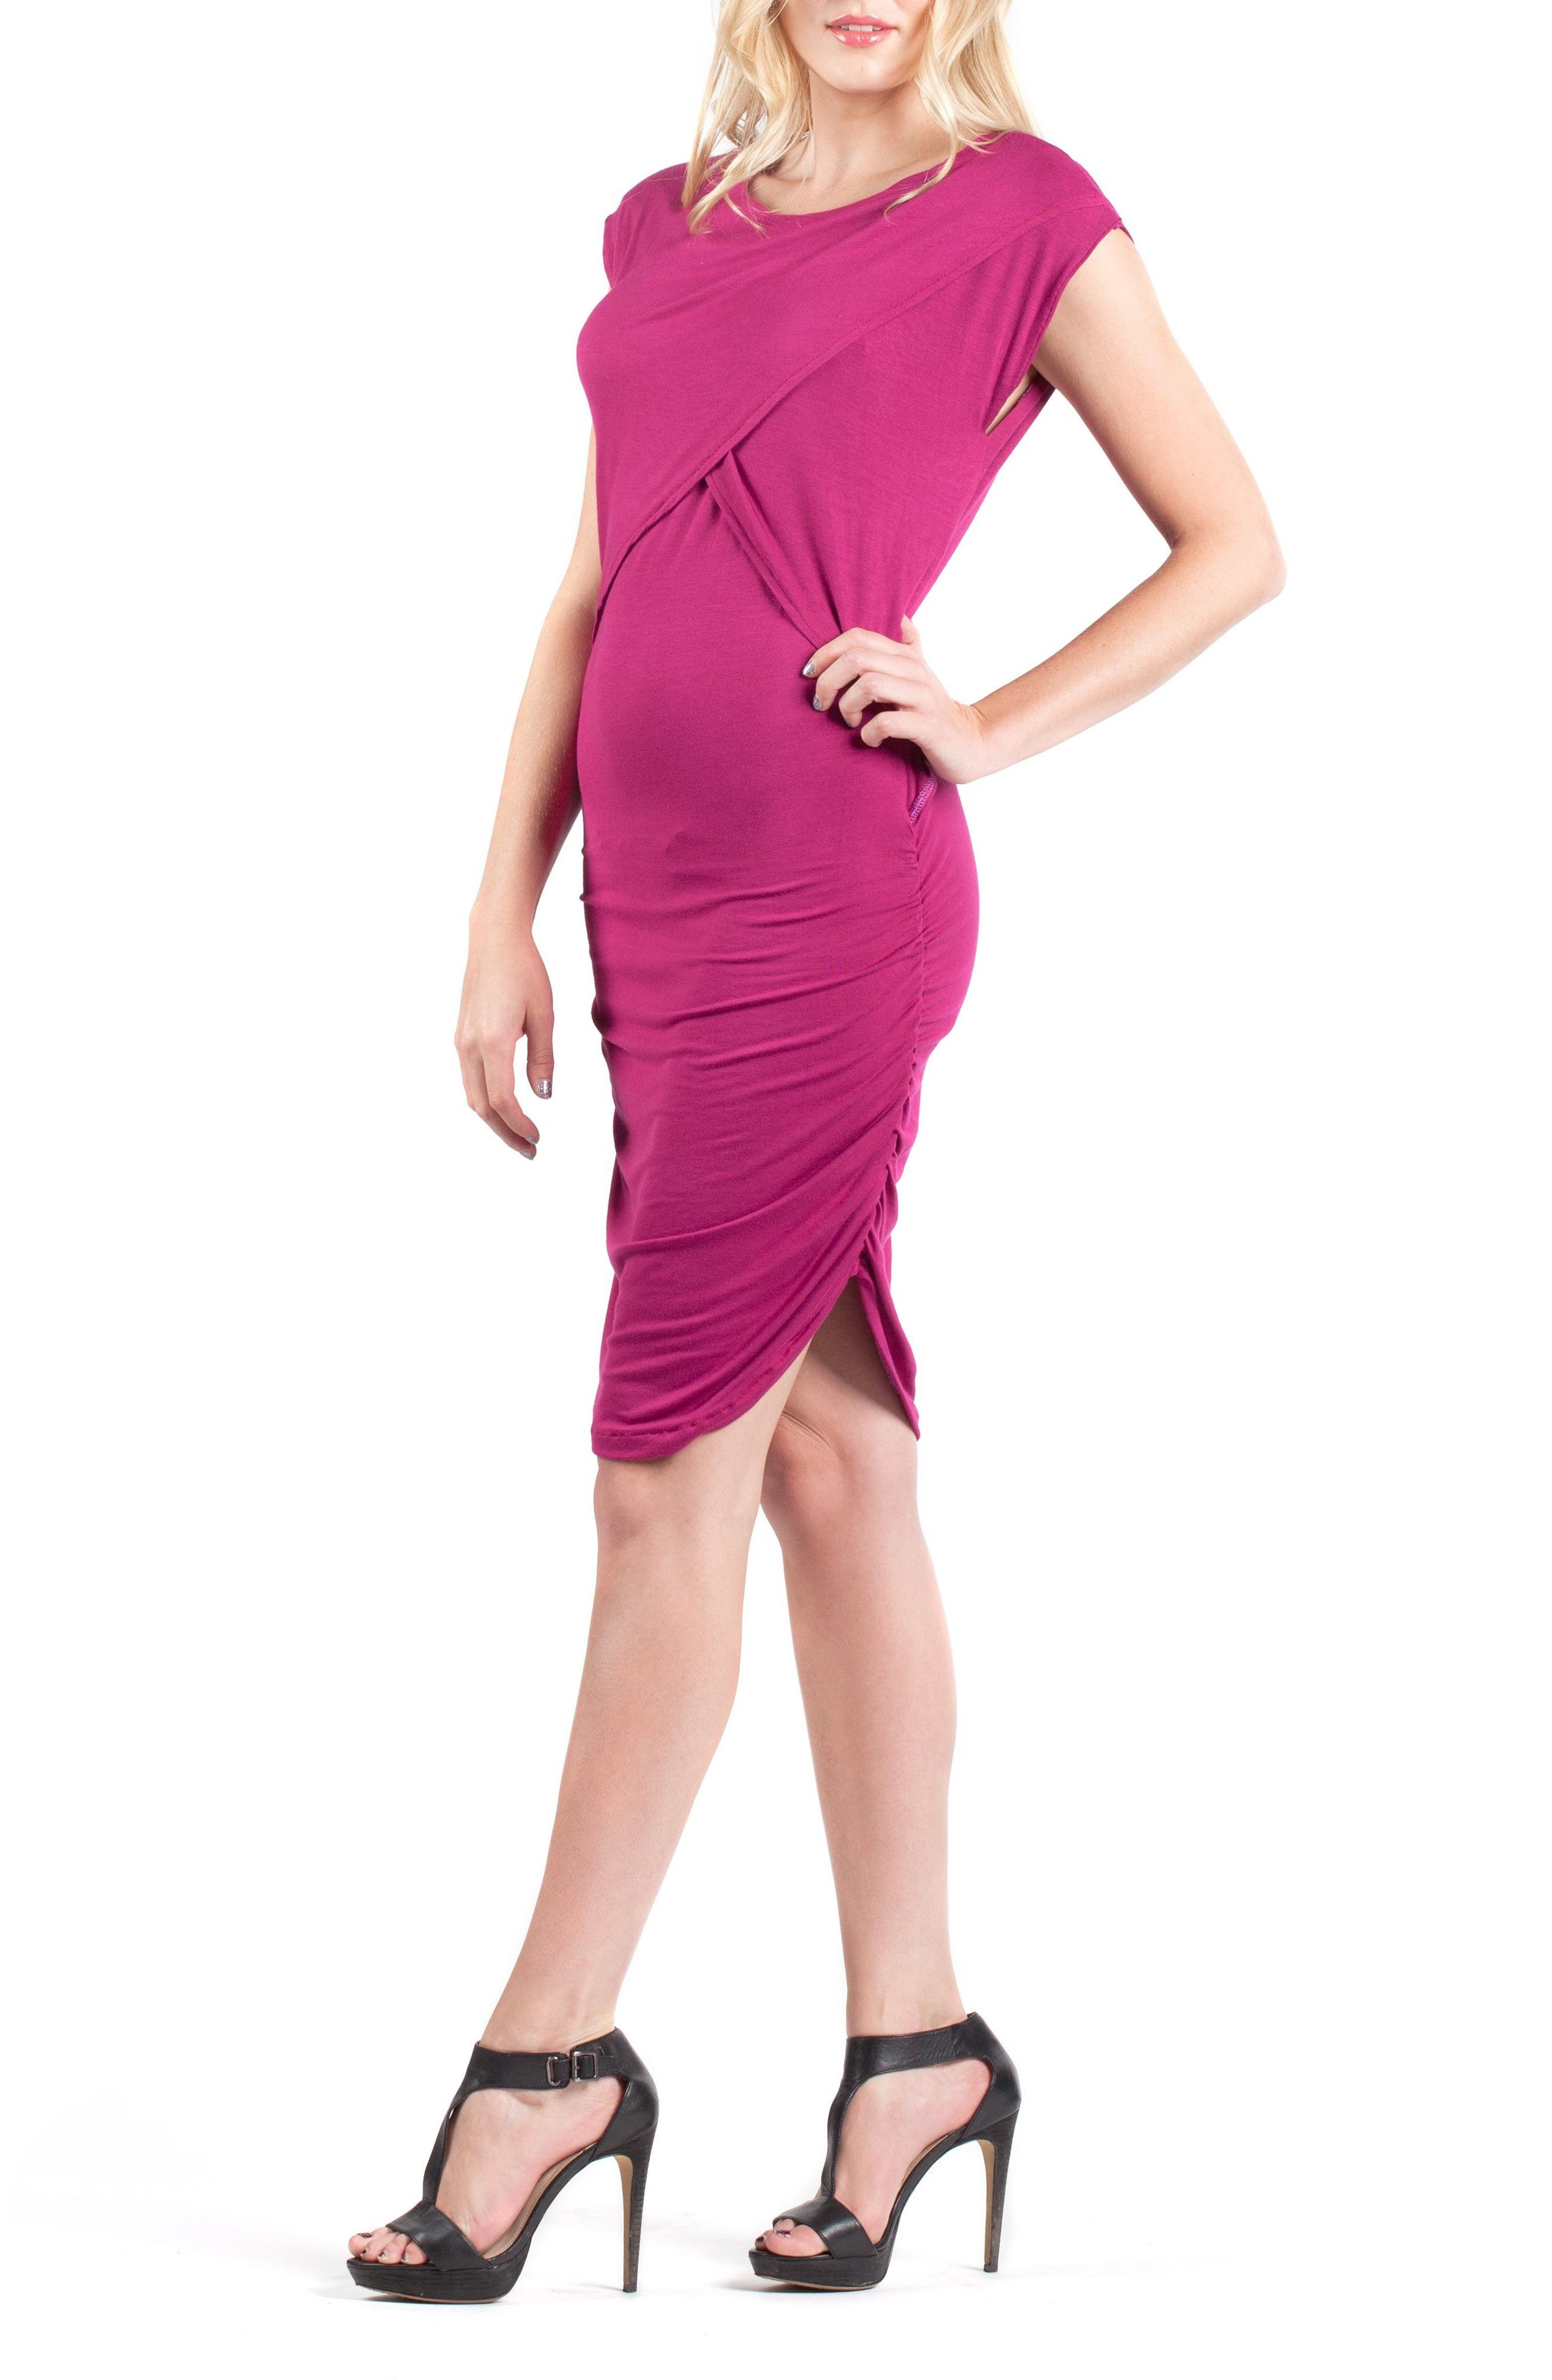 SAVI MOM Miami Crossover Maternity/Nursing Sheath Dress